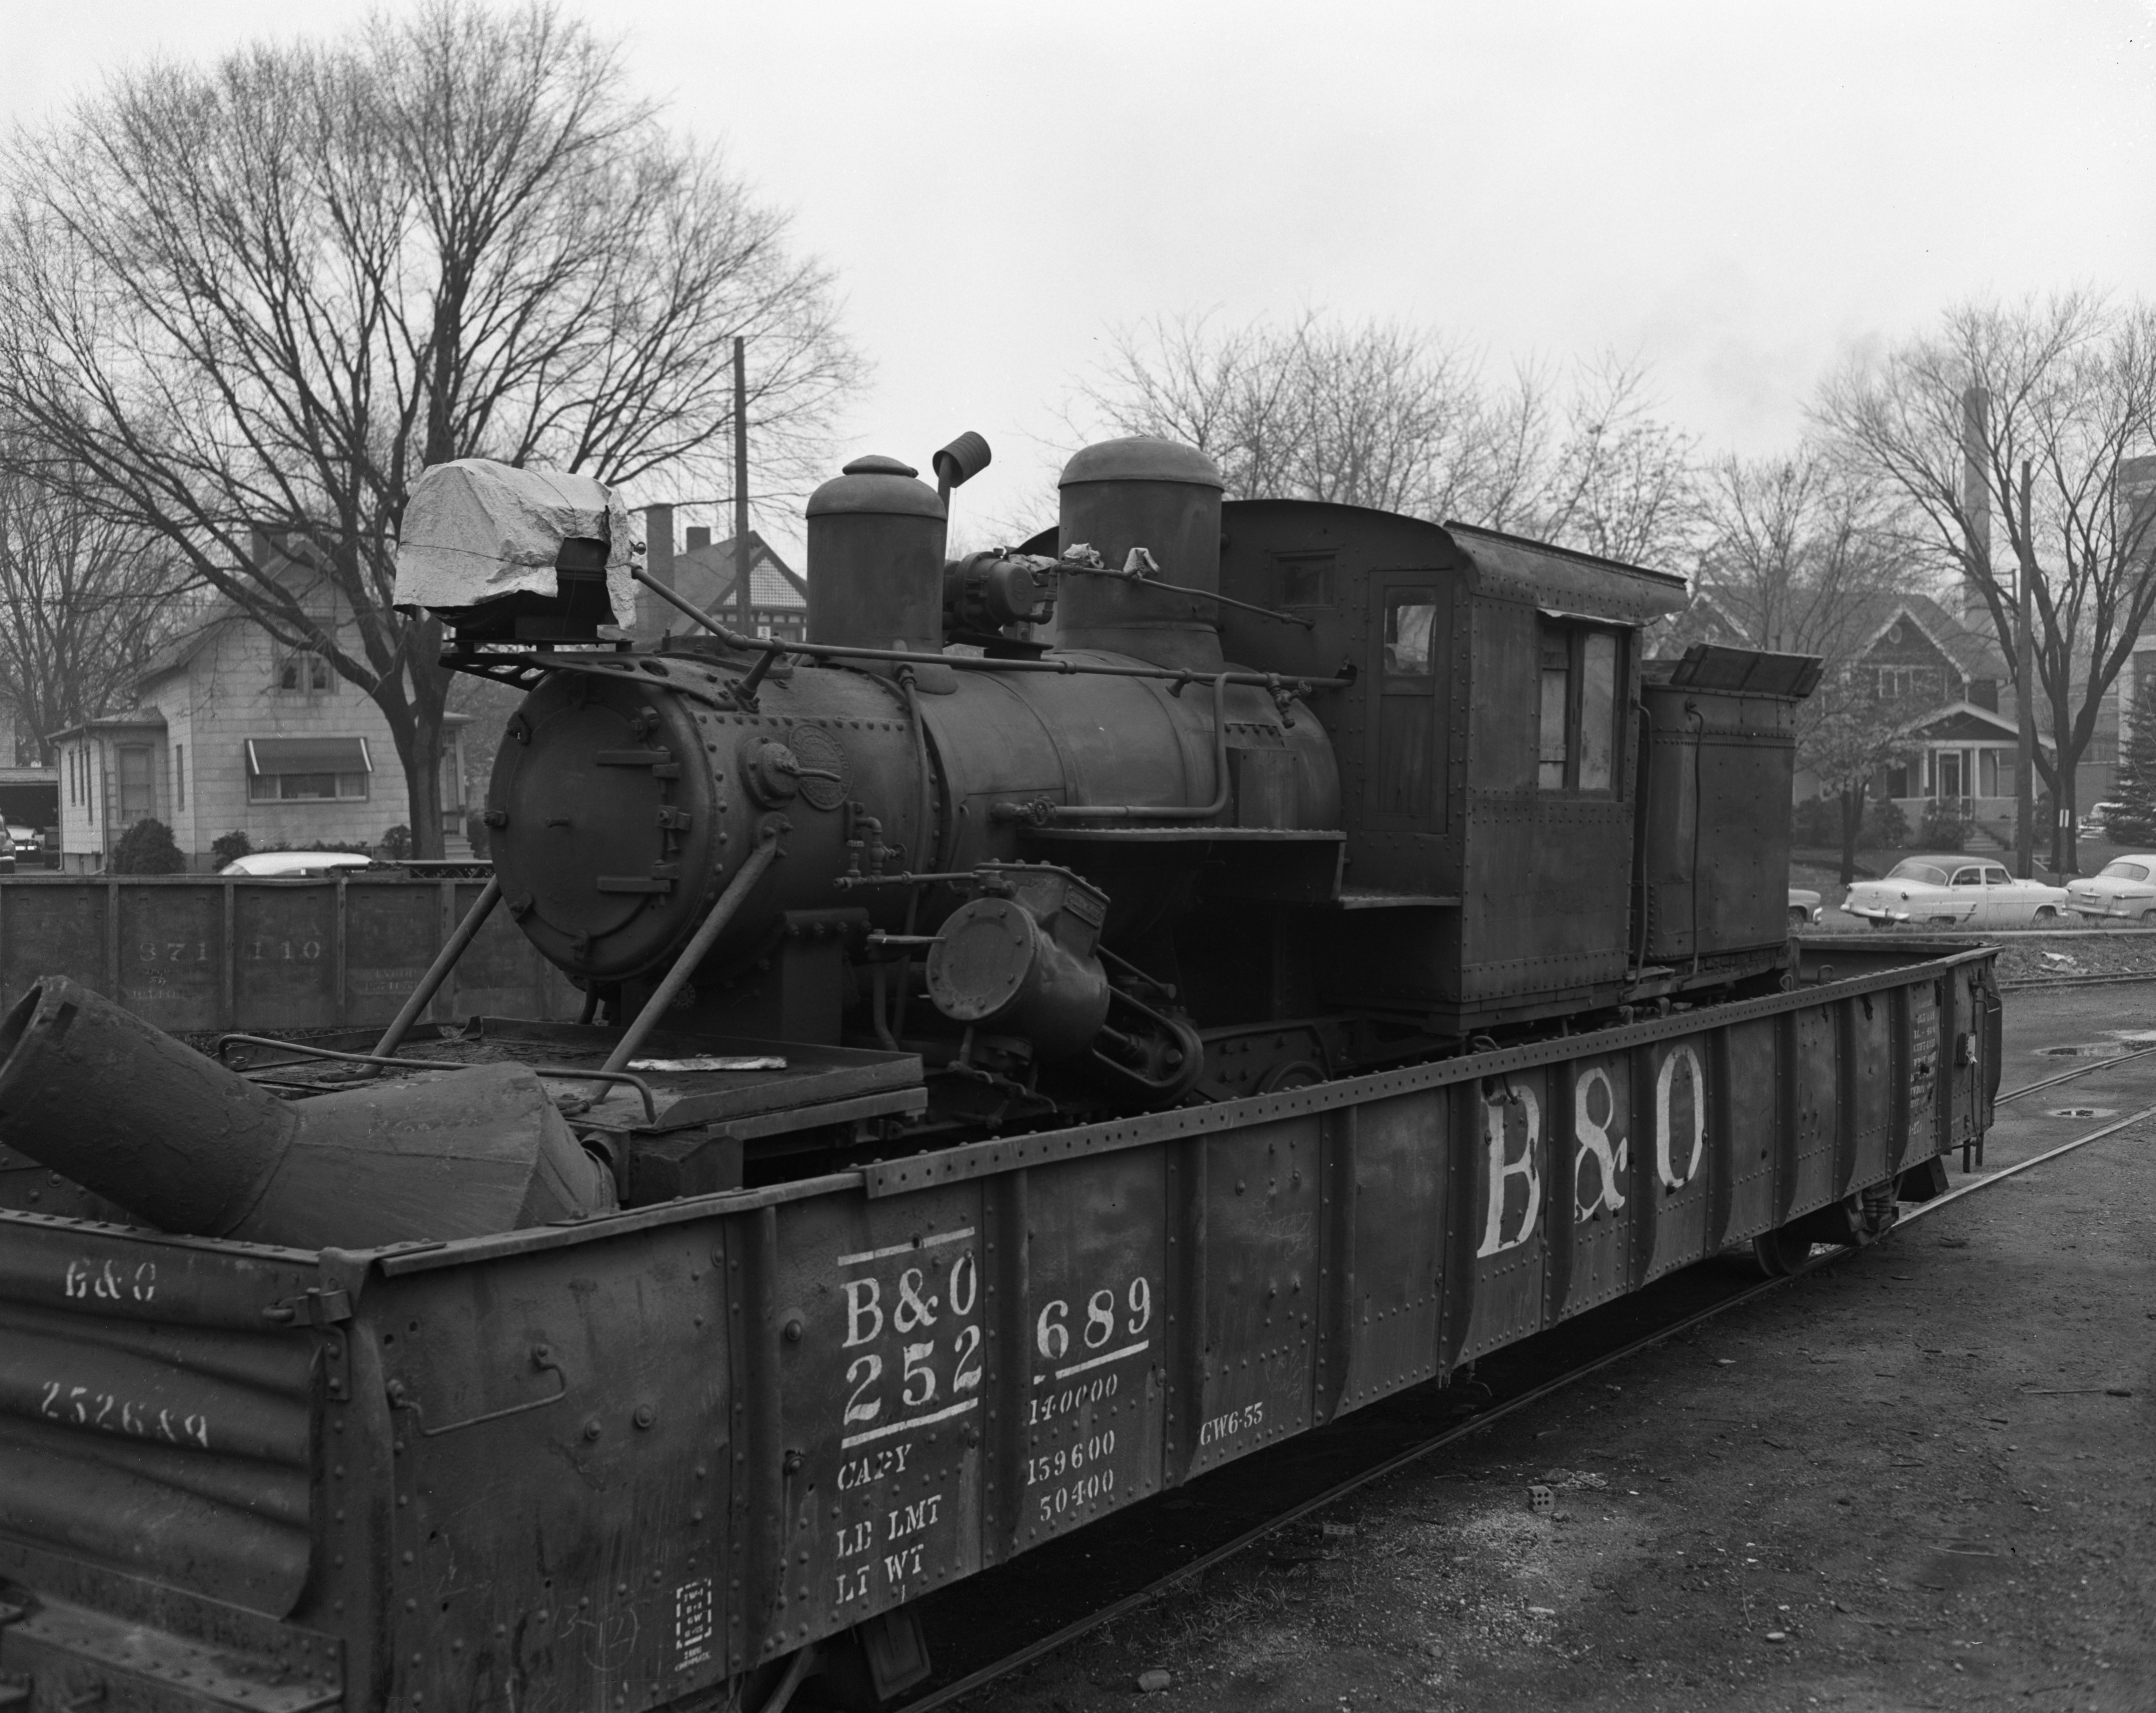 Climax locomotive stops in Ann Arbor, November 1956 image